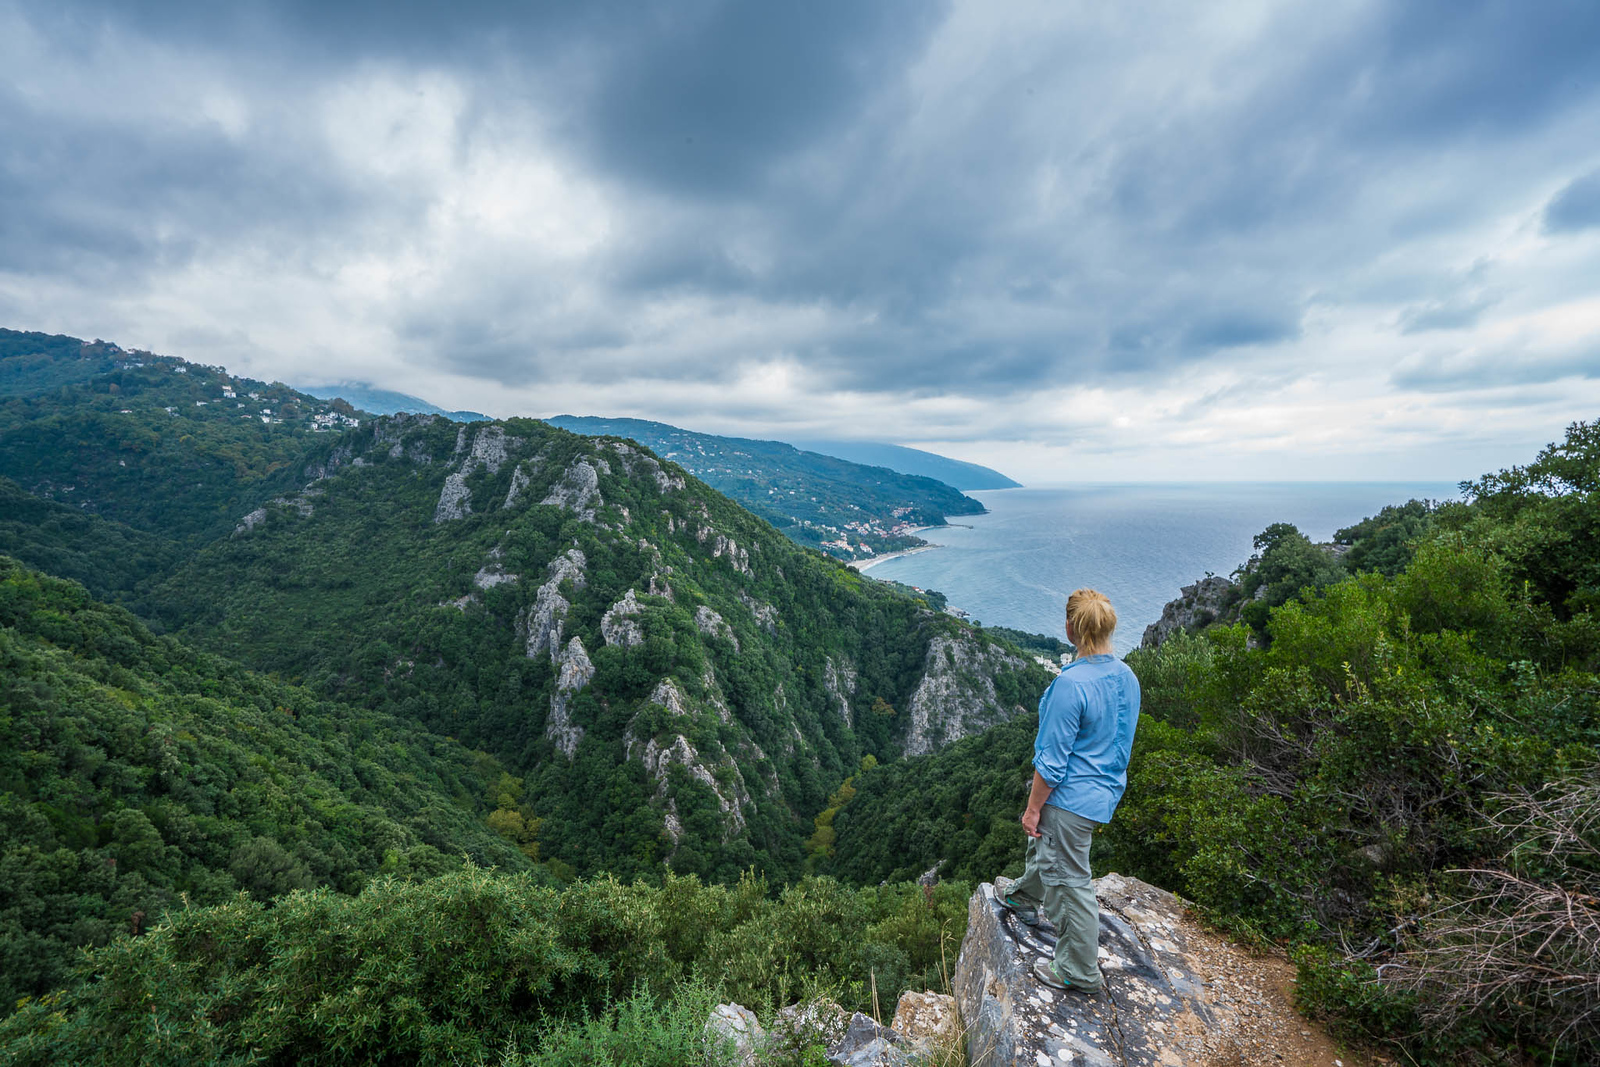 Time to go hiking in Pelion